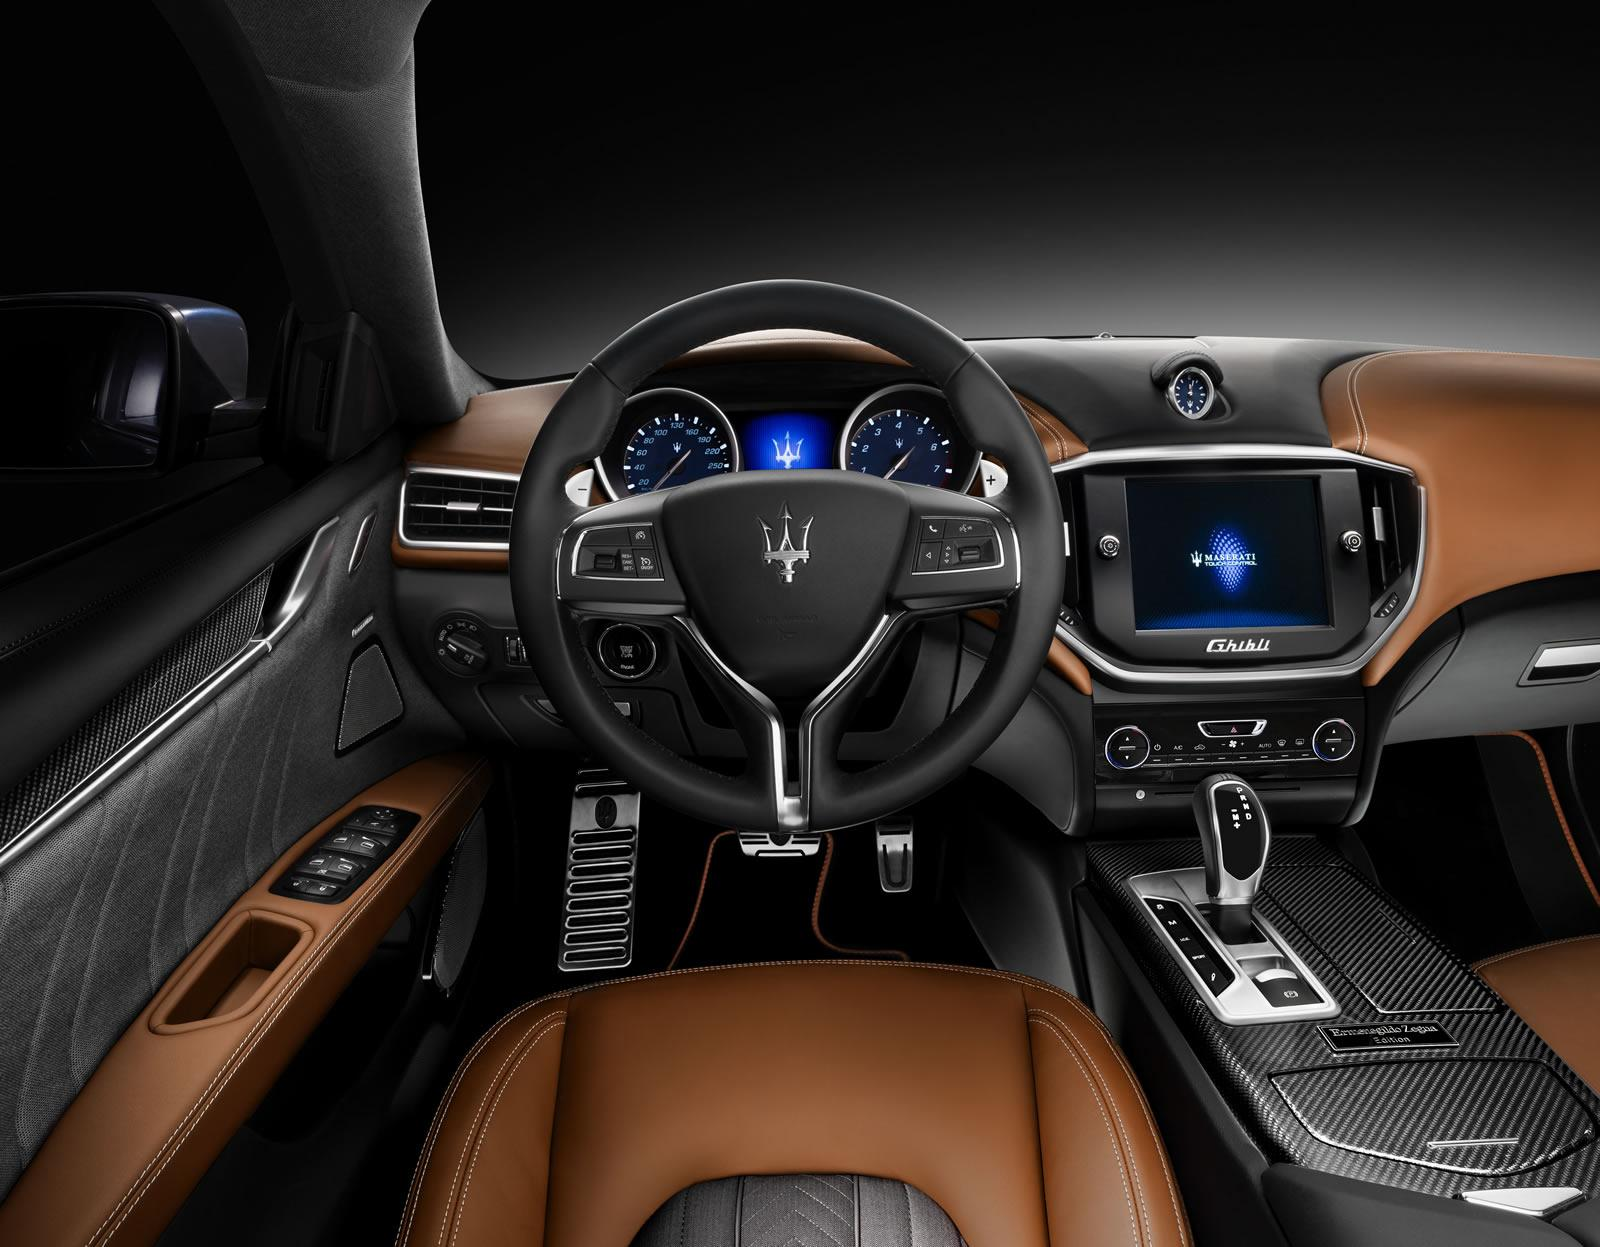 2011 Maserati Quattroporte Parts and Accessories